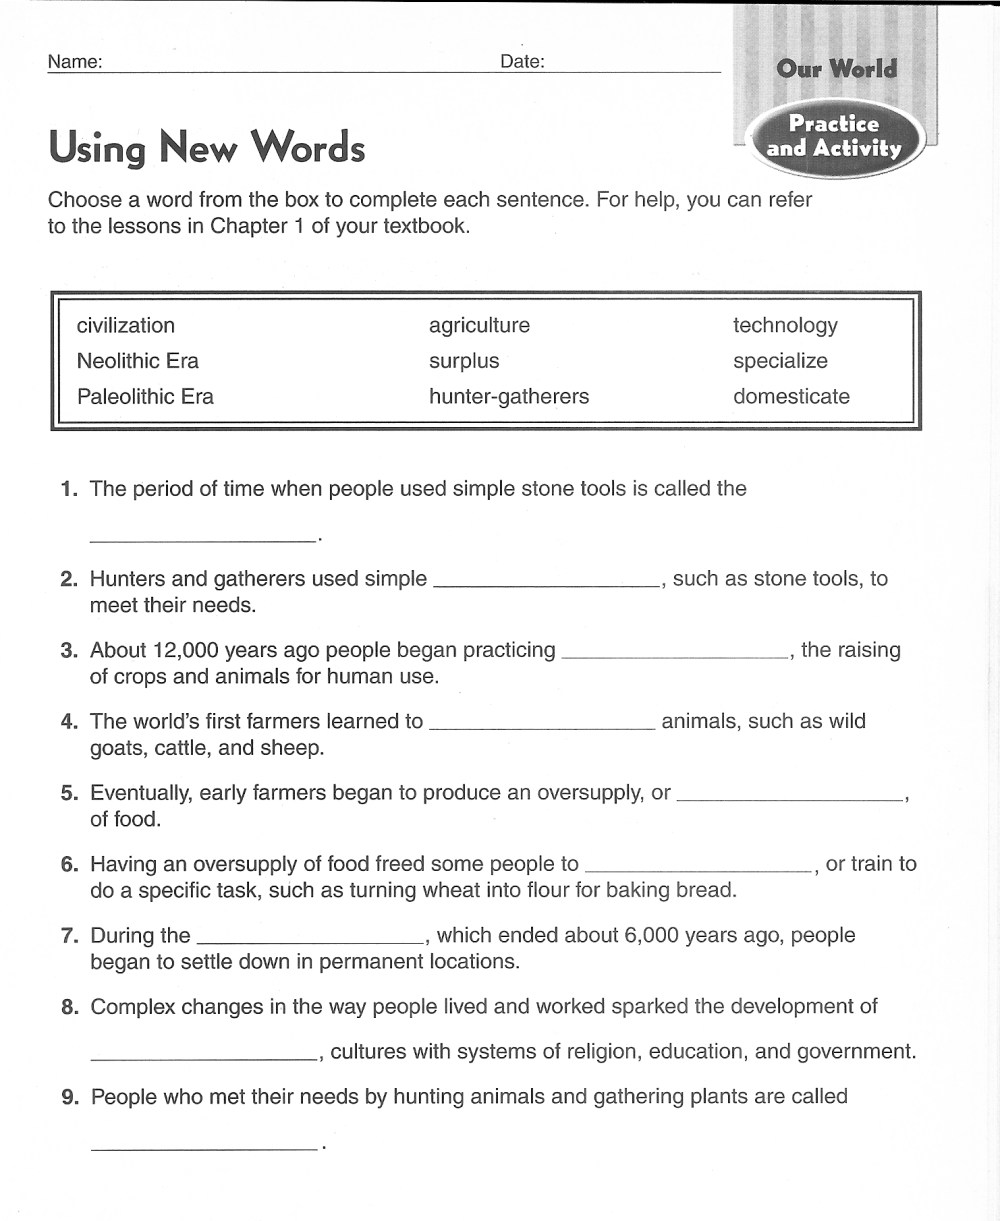 medium resolution of 6th grade social studies homework help literature review writing services